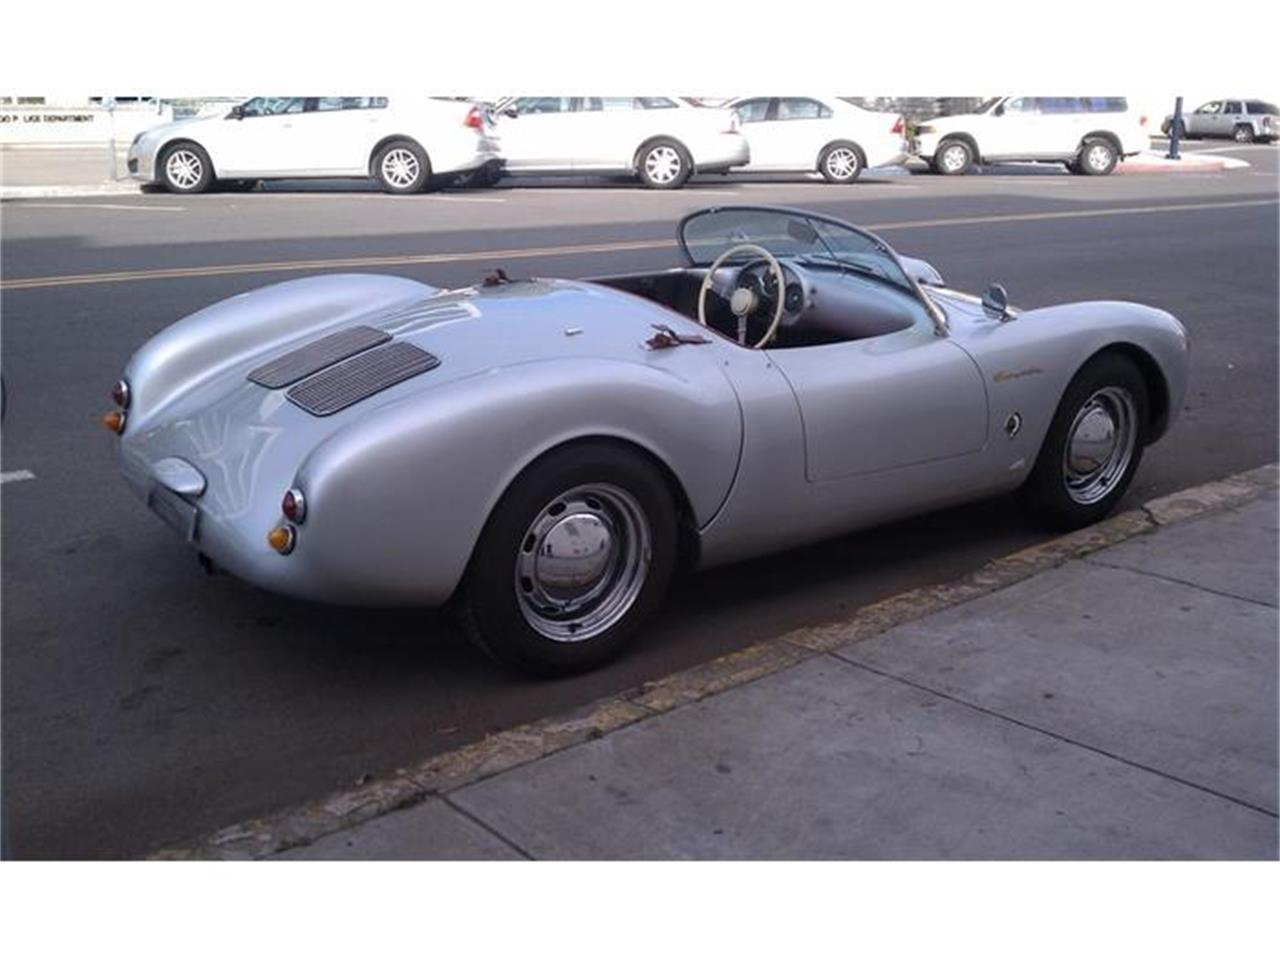 Large Picture of 1955 Porsche 550 Spyder Replica - $34,950.00 - AH6S